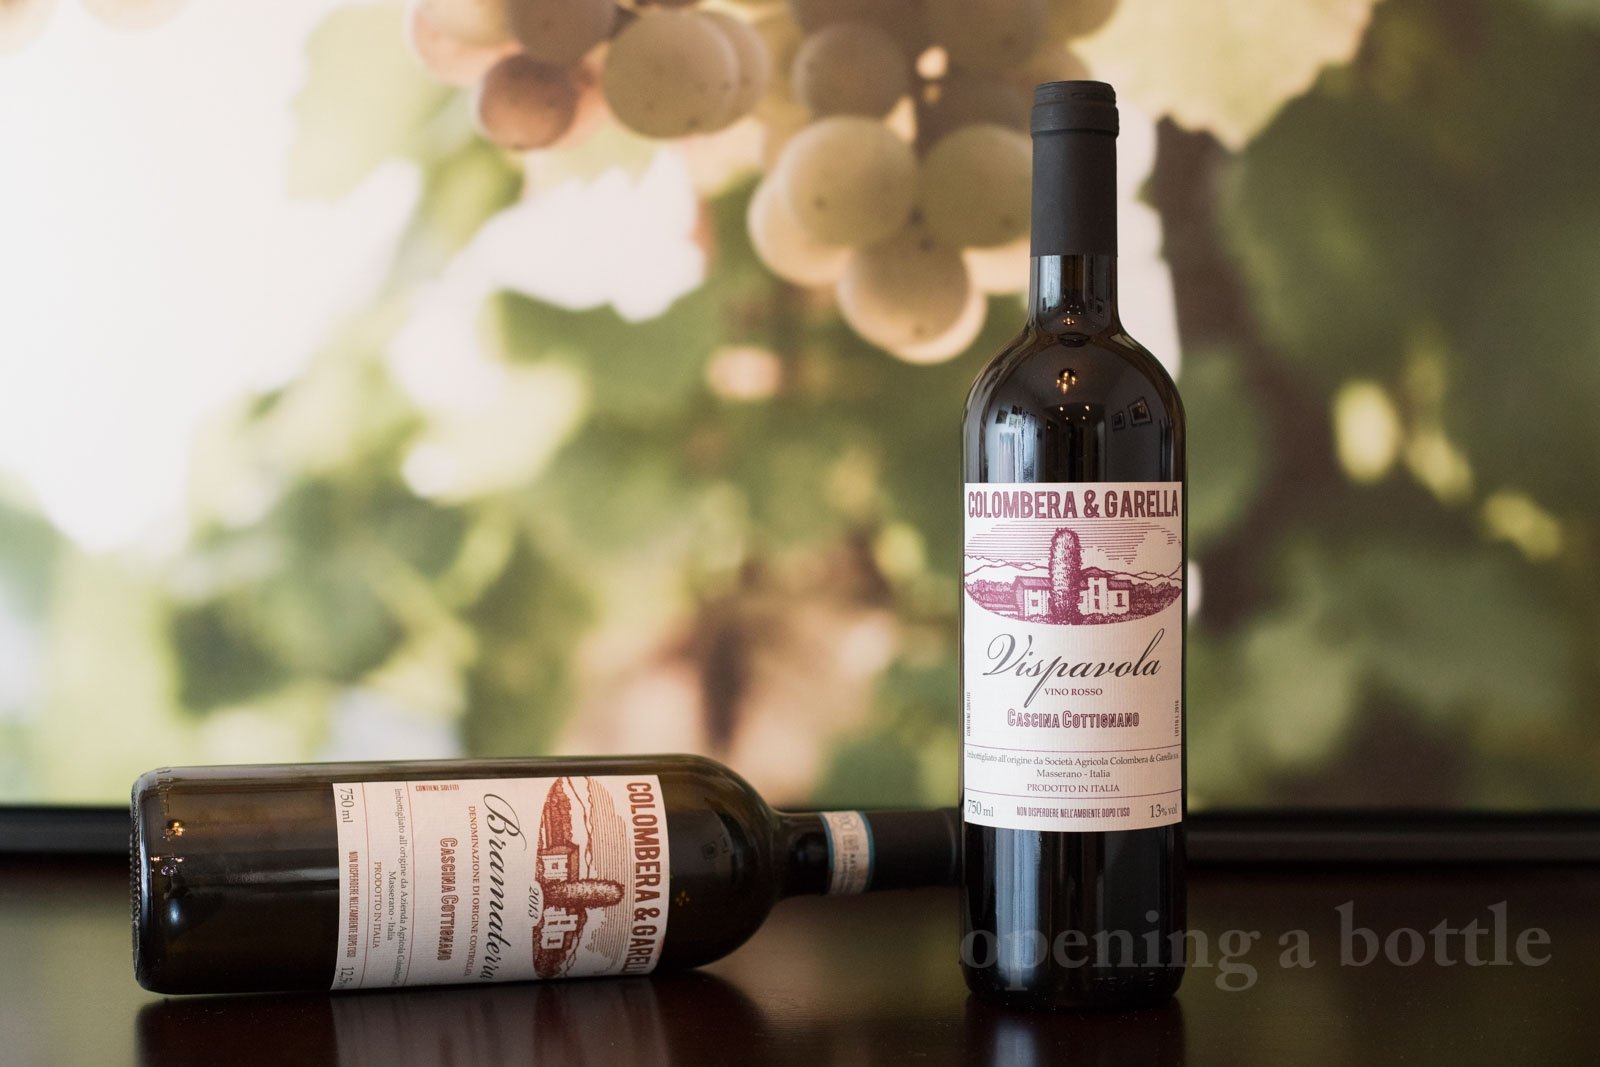 Colombera e Garella Vispavola & Bramaterra wines. ©Kevin Day/Opening a Bottle